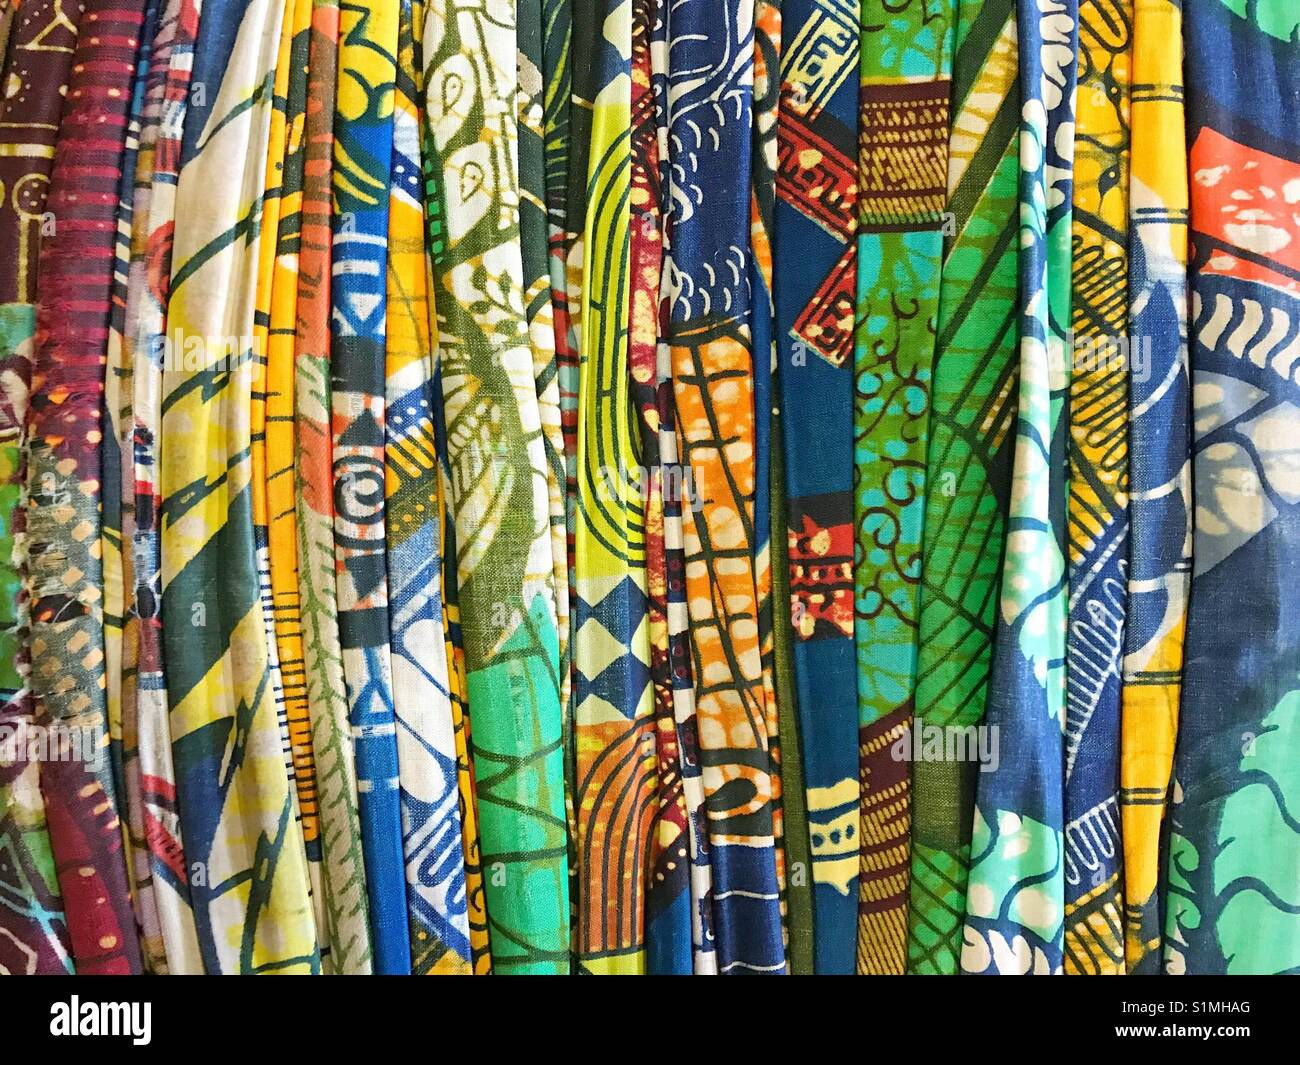 Bale of brightly coloured cotton fabric - Stock Image